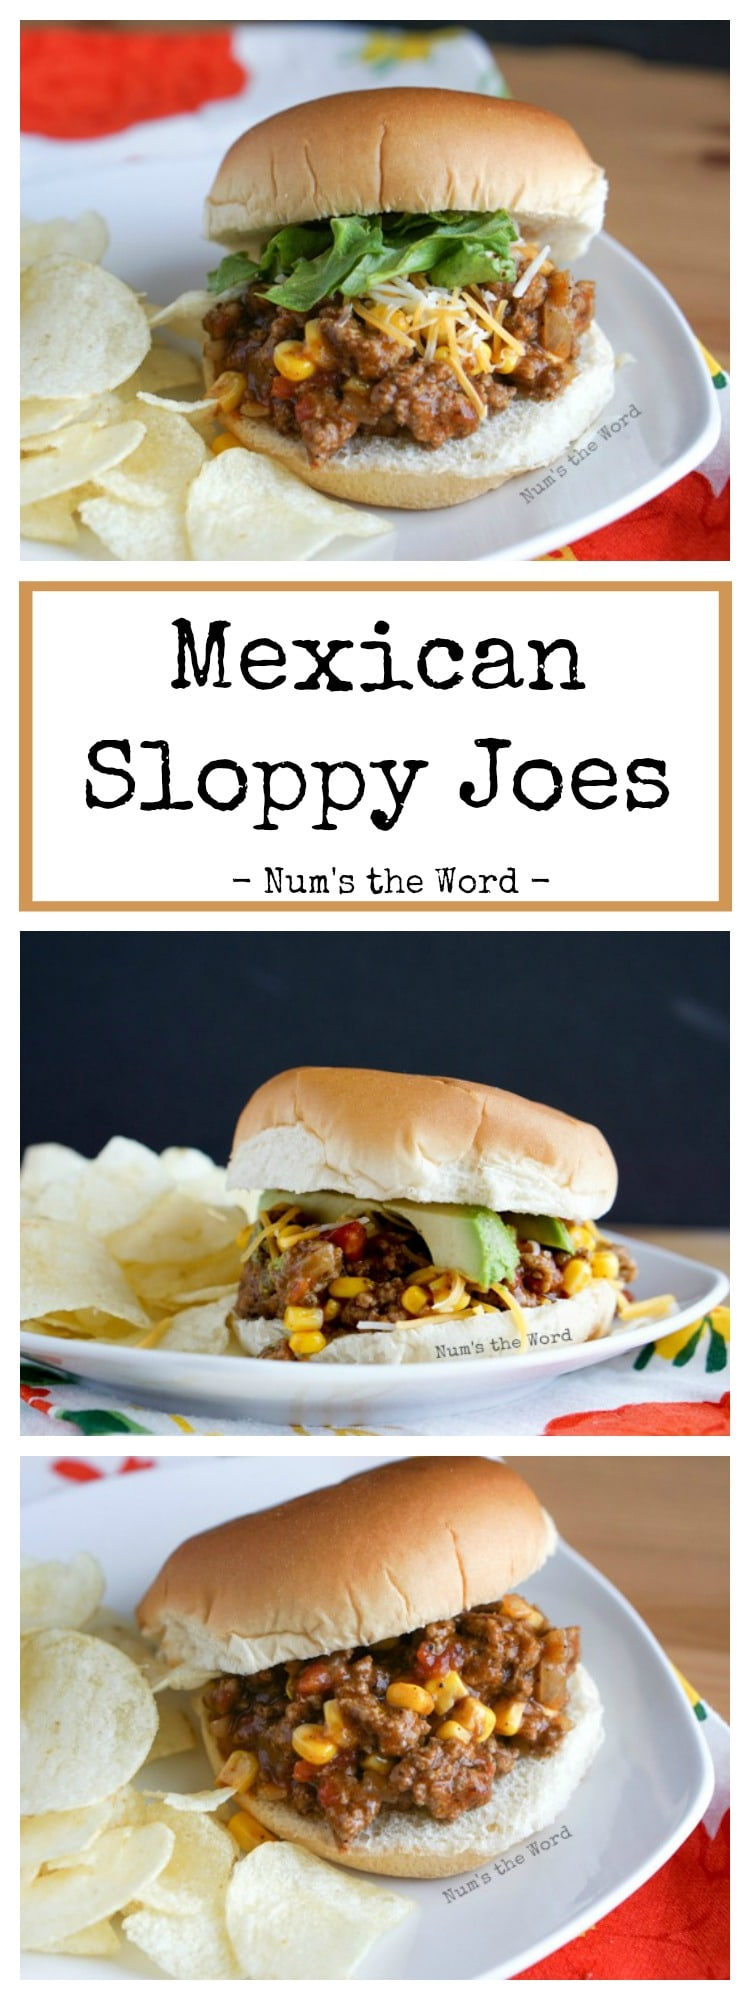 Mexican Sloppy Joes - collage of images for Pinterest long pin